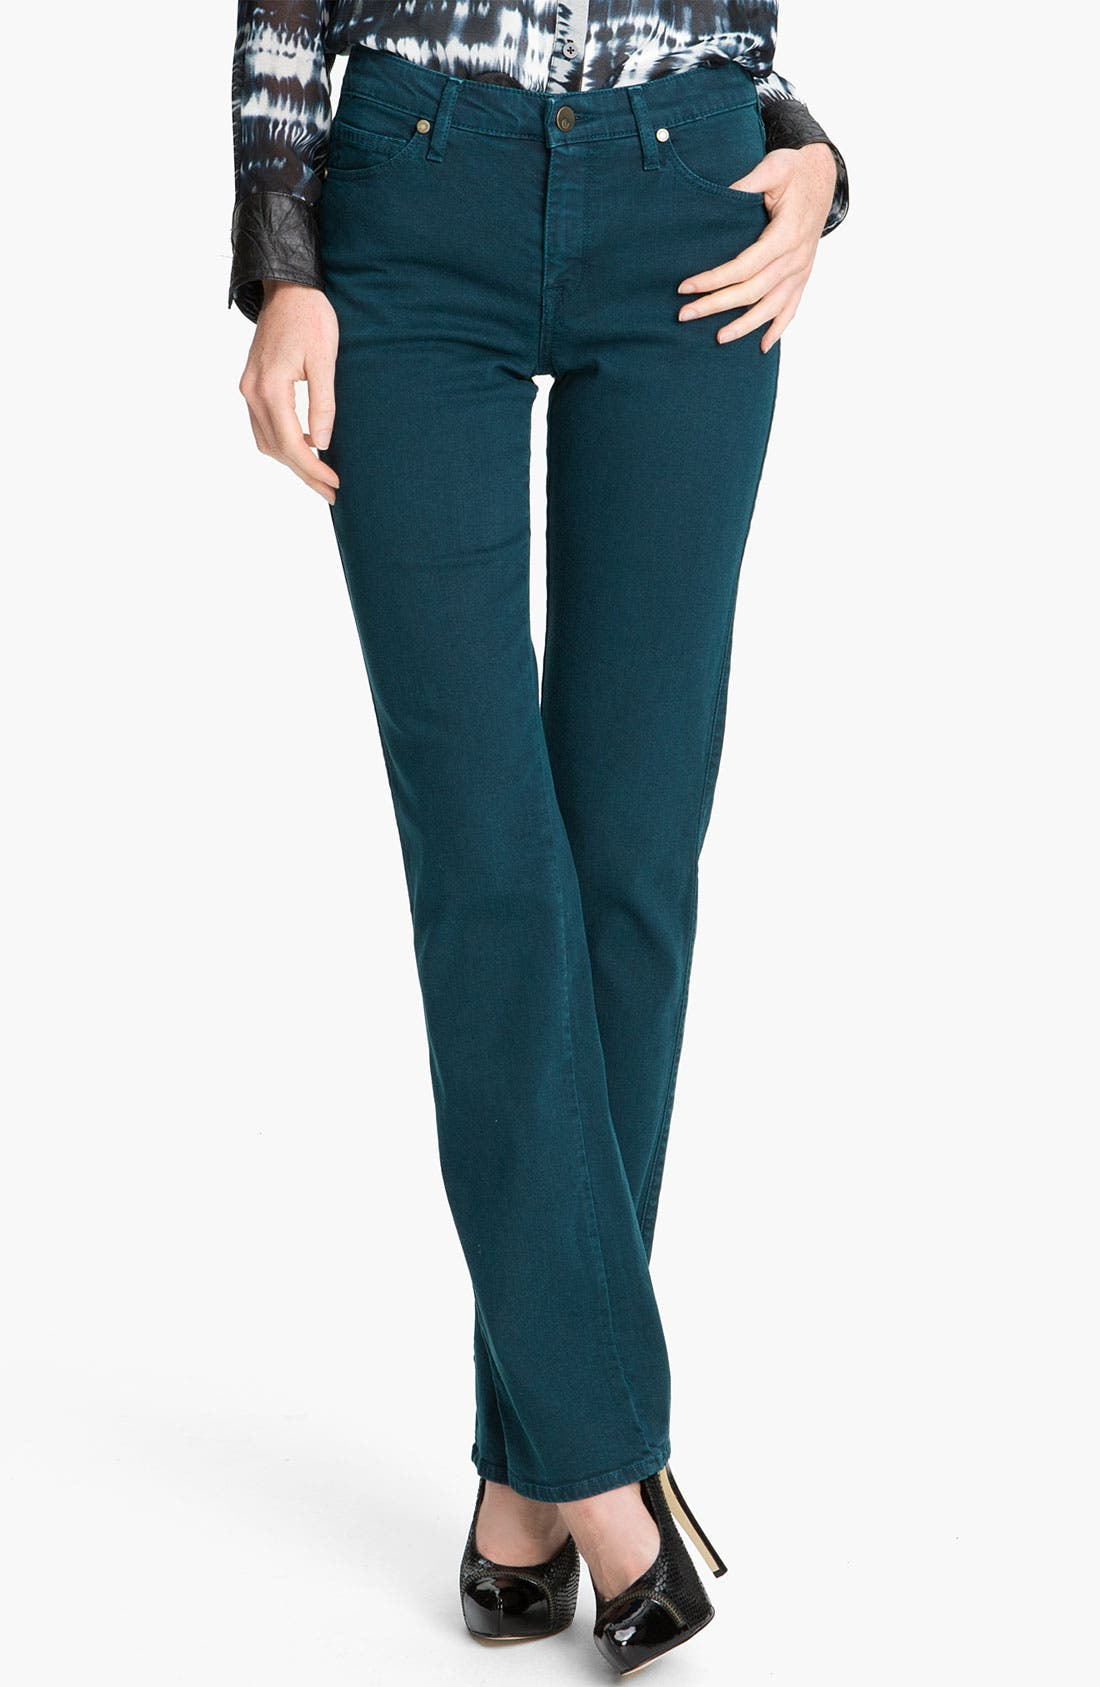 Alternate Image 1 Selected - CJ by Cookie Johnson 'Faith' Straight Leg Stretch Jeans